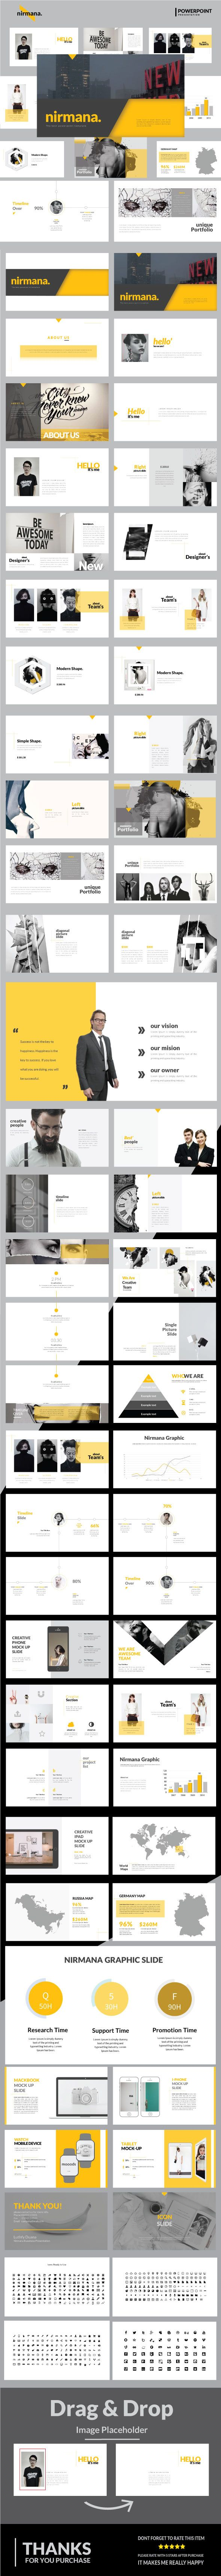 Nirmana - Keynote Business Presentation Templates - #Keynote Templates Presentation Templates Download here: https://graphicriver.net/item/nirmana-keynote-business-presentation-templates/19740179?ref=alena994